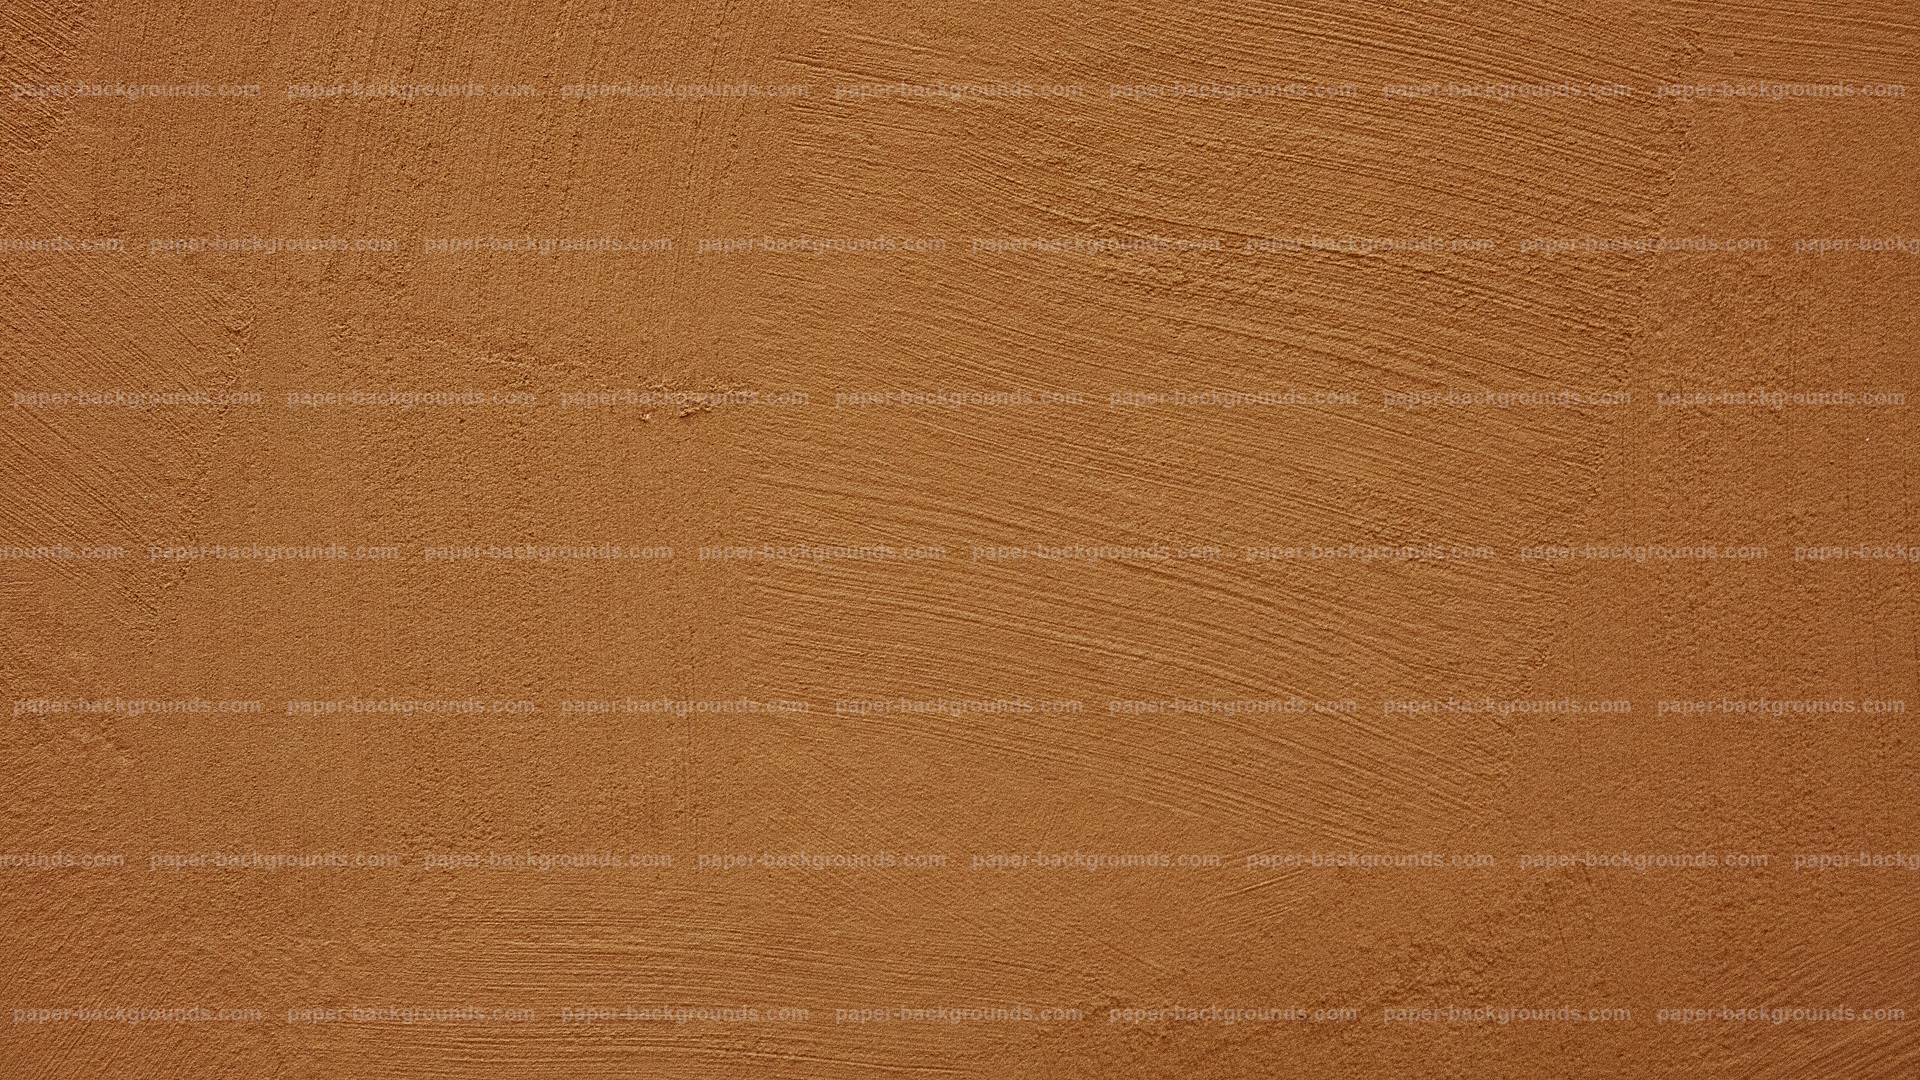 Brown Painted Concrete Wall Texture HD